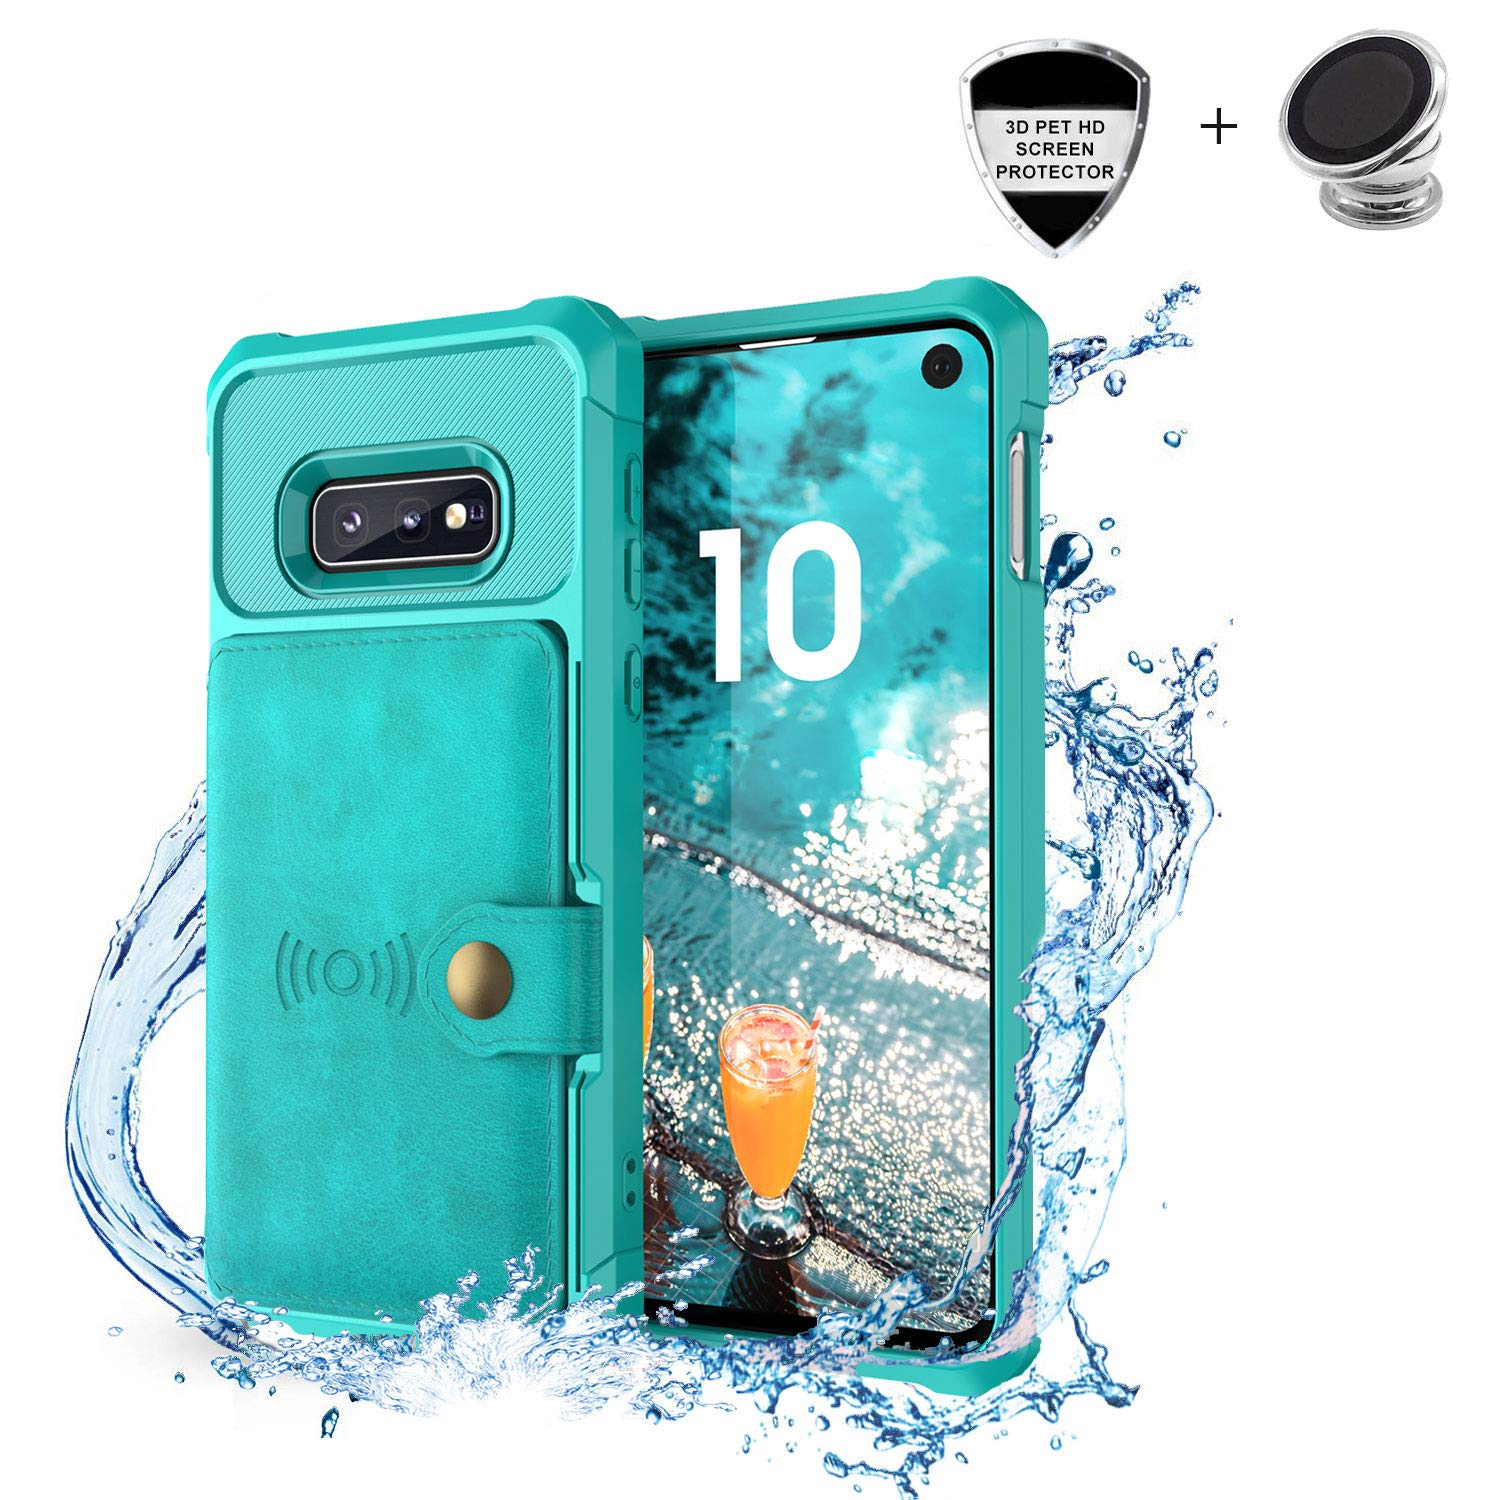 Samsung Galaxy S10 Plus Case, Sumsung S10 Plus Wallet Flip Leather Kickstand Fit Magnetic Car Mount Wireless Charging Slim Durable Shockproof Protective Case Cover with Card Holder (Turquoise)